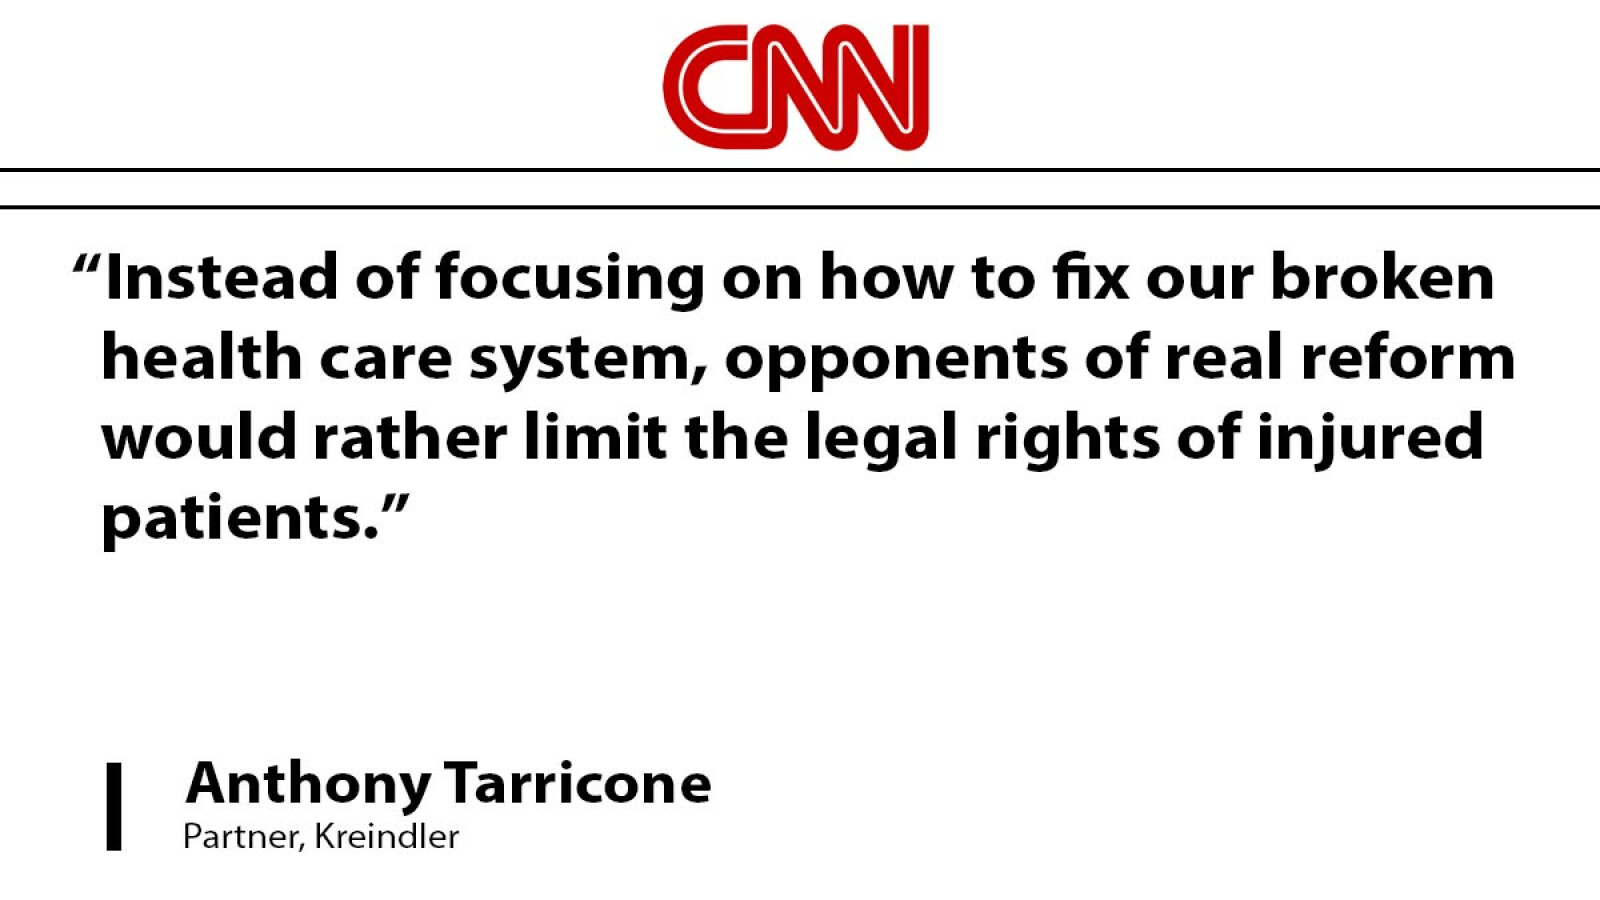 Attorney Anthony Tarricone writes opinion column for CNN: Blaming Lawyers a Bogeyman to Stop Health Reform